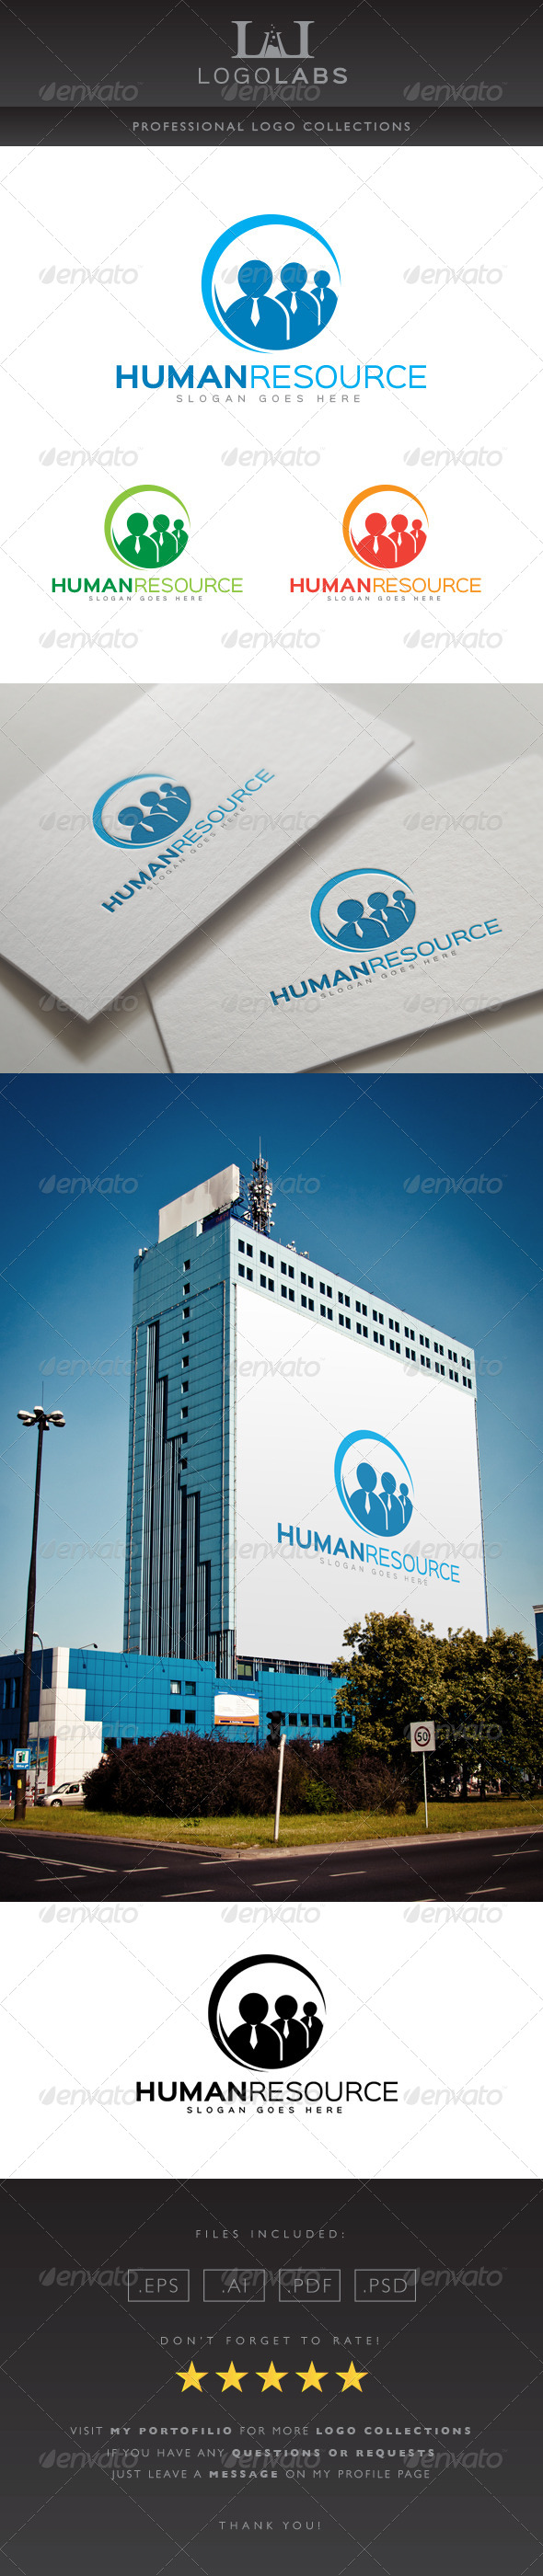 GraphicRiver Human Resource Logo 8615890